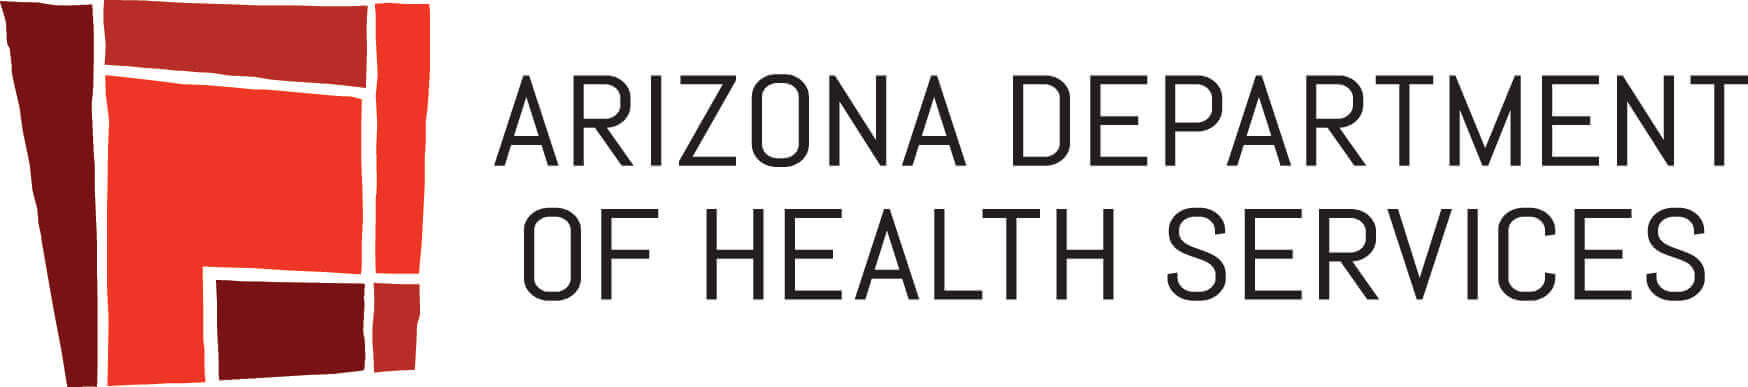 arizona department of health services logo in red